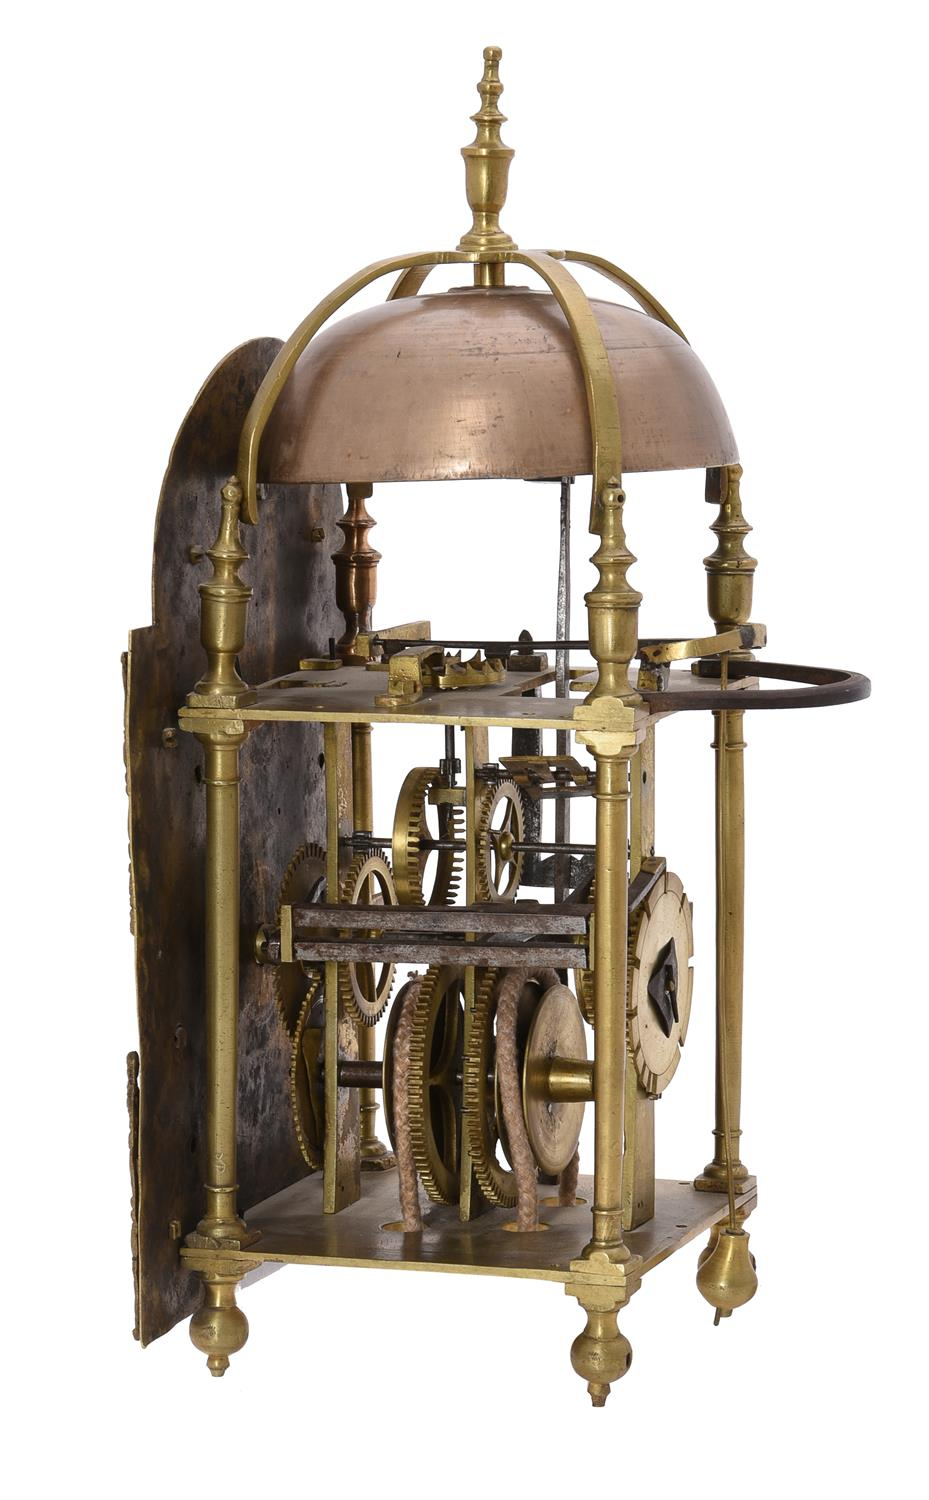 A George III brass lantern clock made for the Middle Eastern market - Image 3 of 3